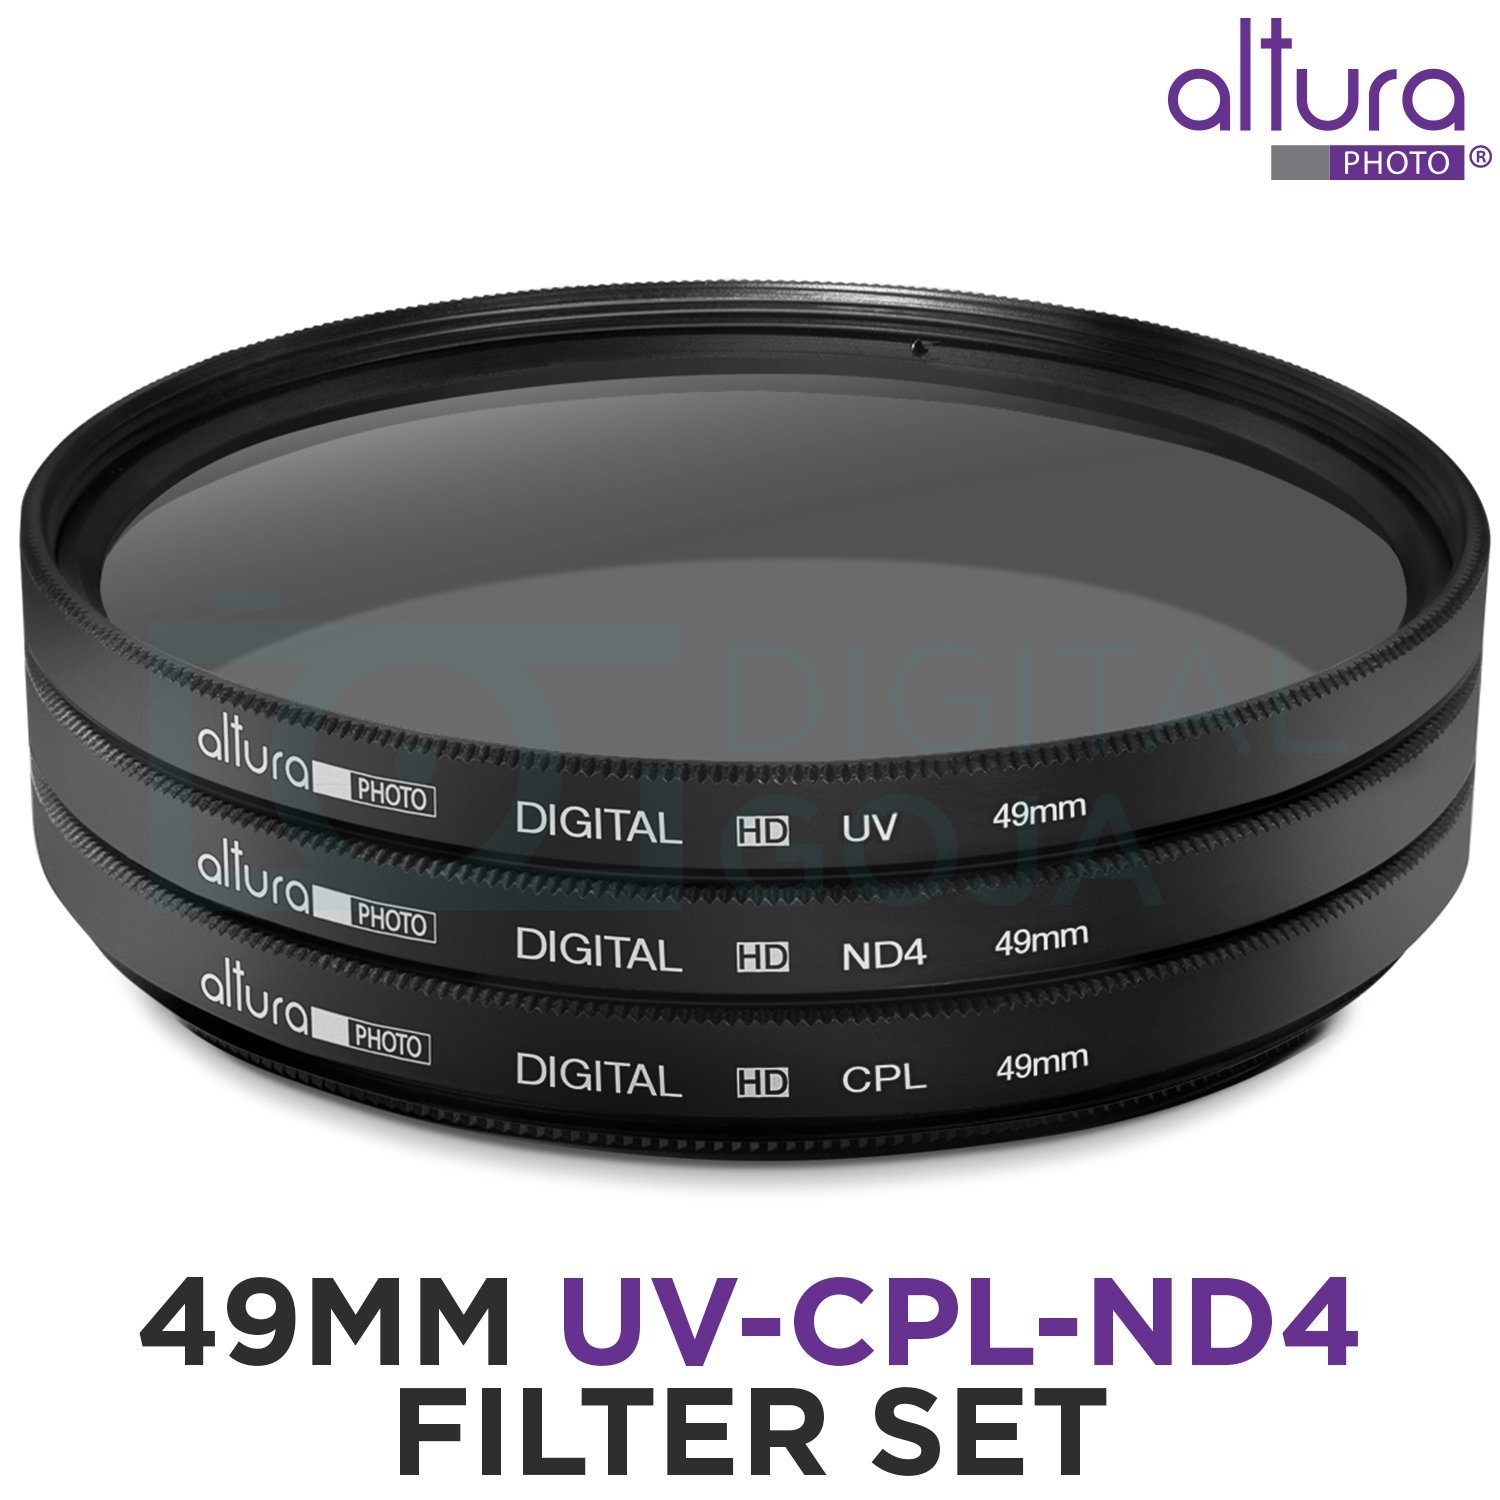 Canon EF-S 35mm f/2.8 Macro is STM Lens w/Essential Photo Bundle - Includes: Altura Photo UV-CPL-ND4, Camera Cleaning Set by Canon (Image #8)